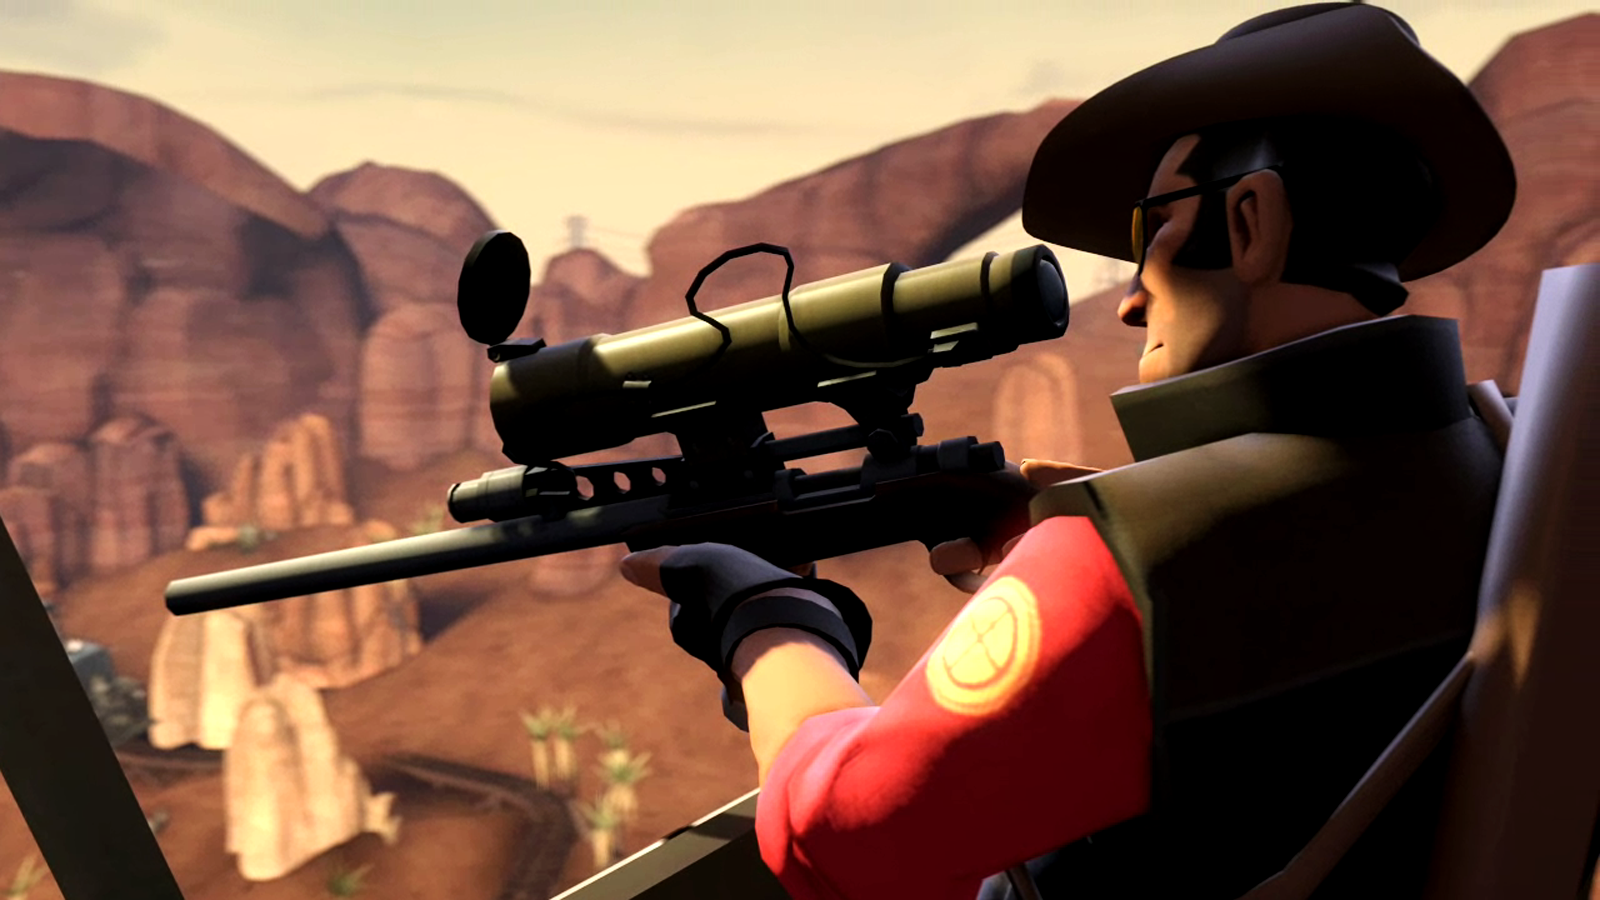 15 Best Sniper Wallpapers from Video Gameswallpapers screensavers 1600x900